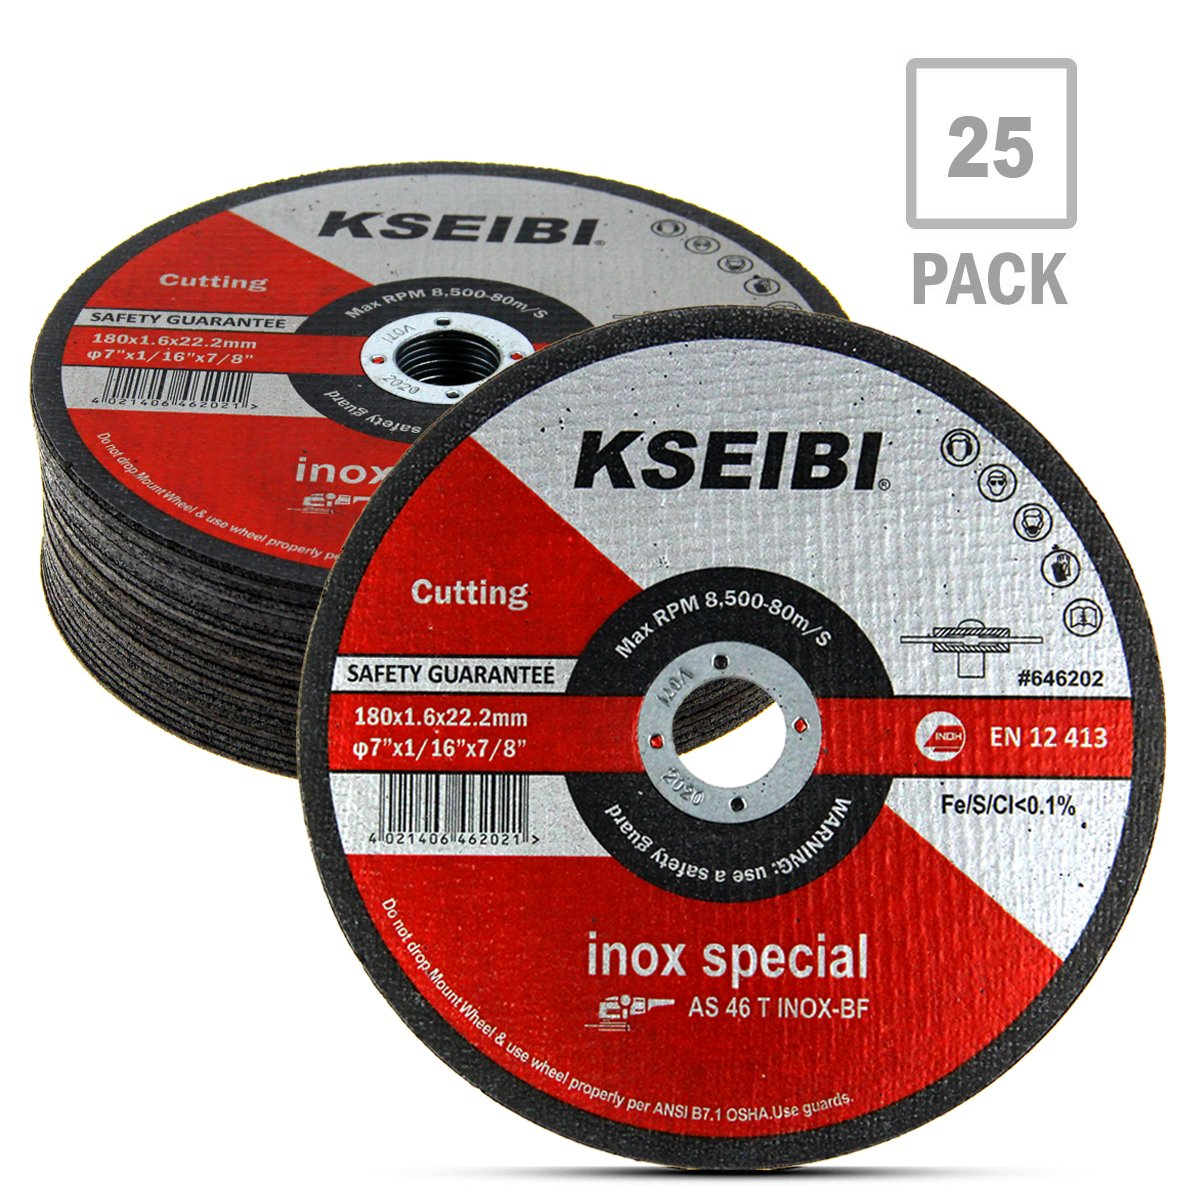 KSEIBI 646202 7-Inch by 1/16-Inch Metal and Stainless Steel Inox Cutting Disc Ultra Thin Flat Cut Off Wheel, 7/8-Inch Arbor, 25-Pack